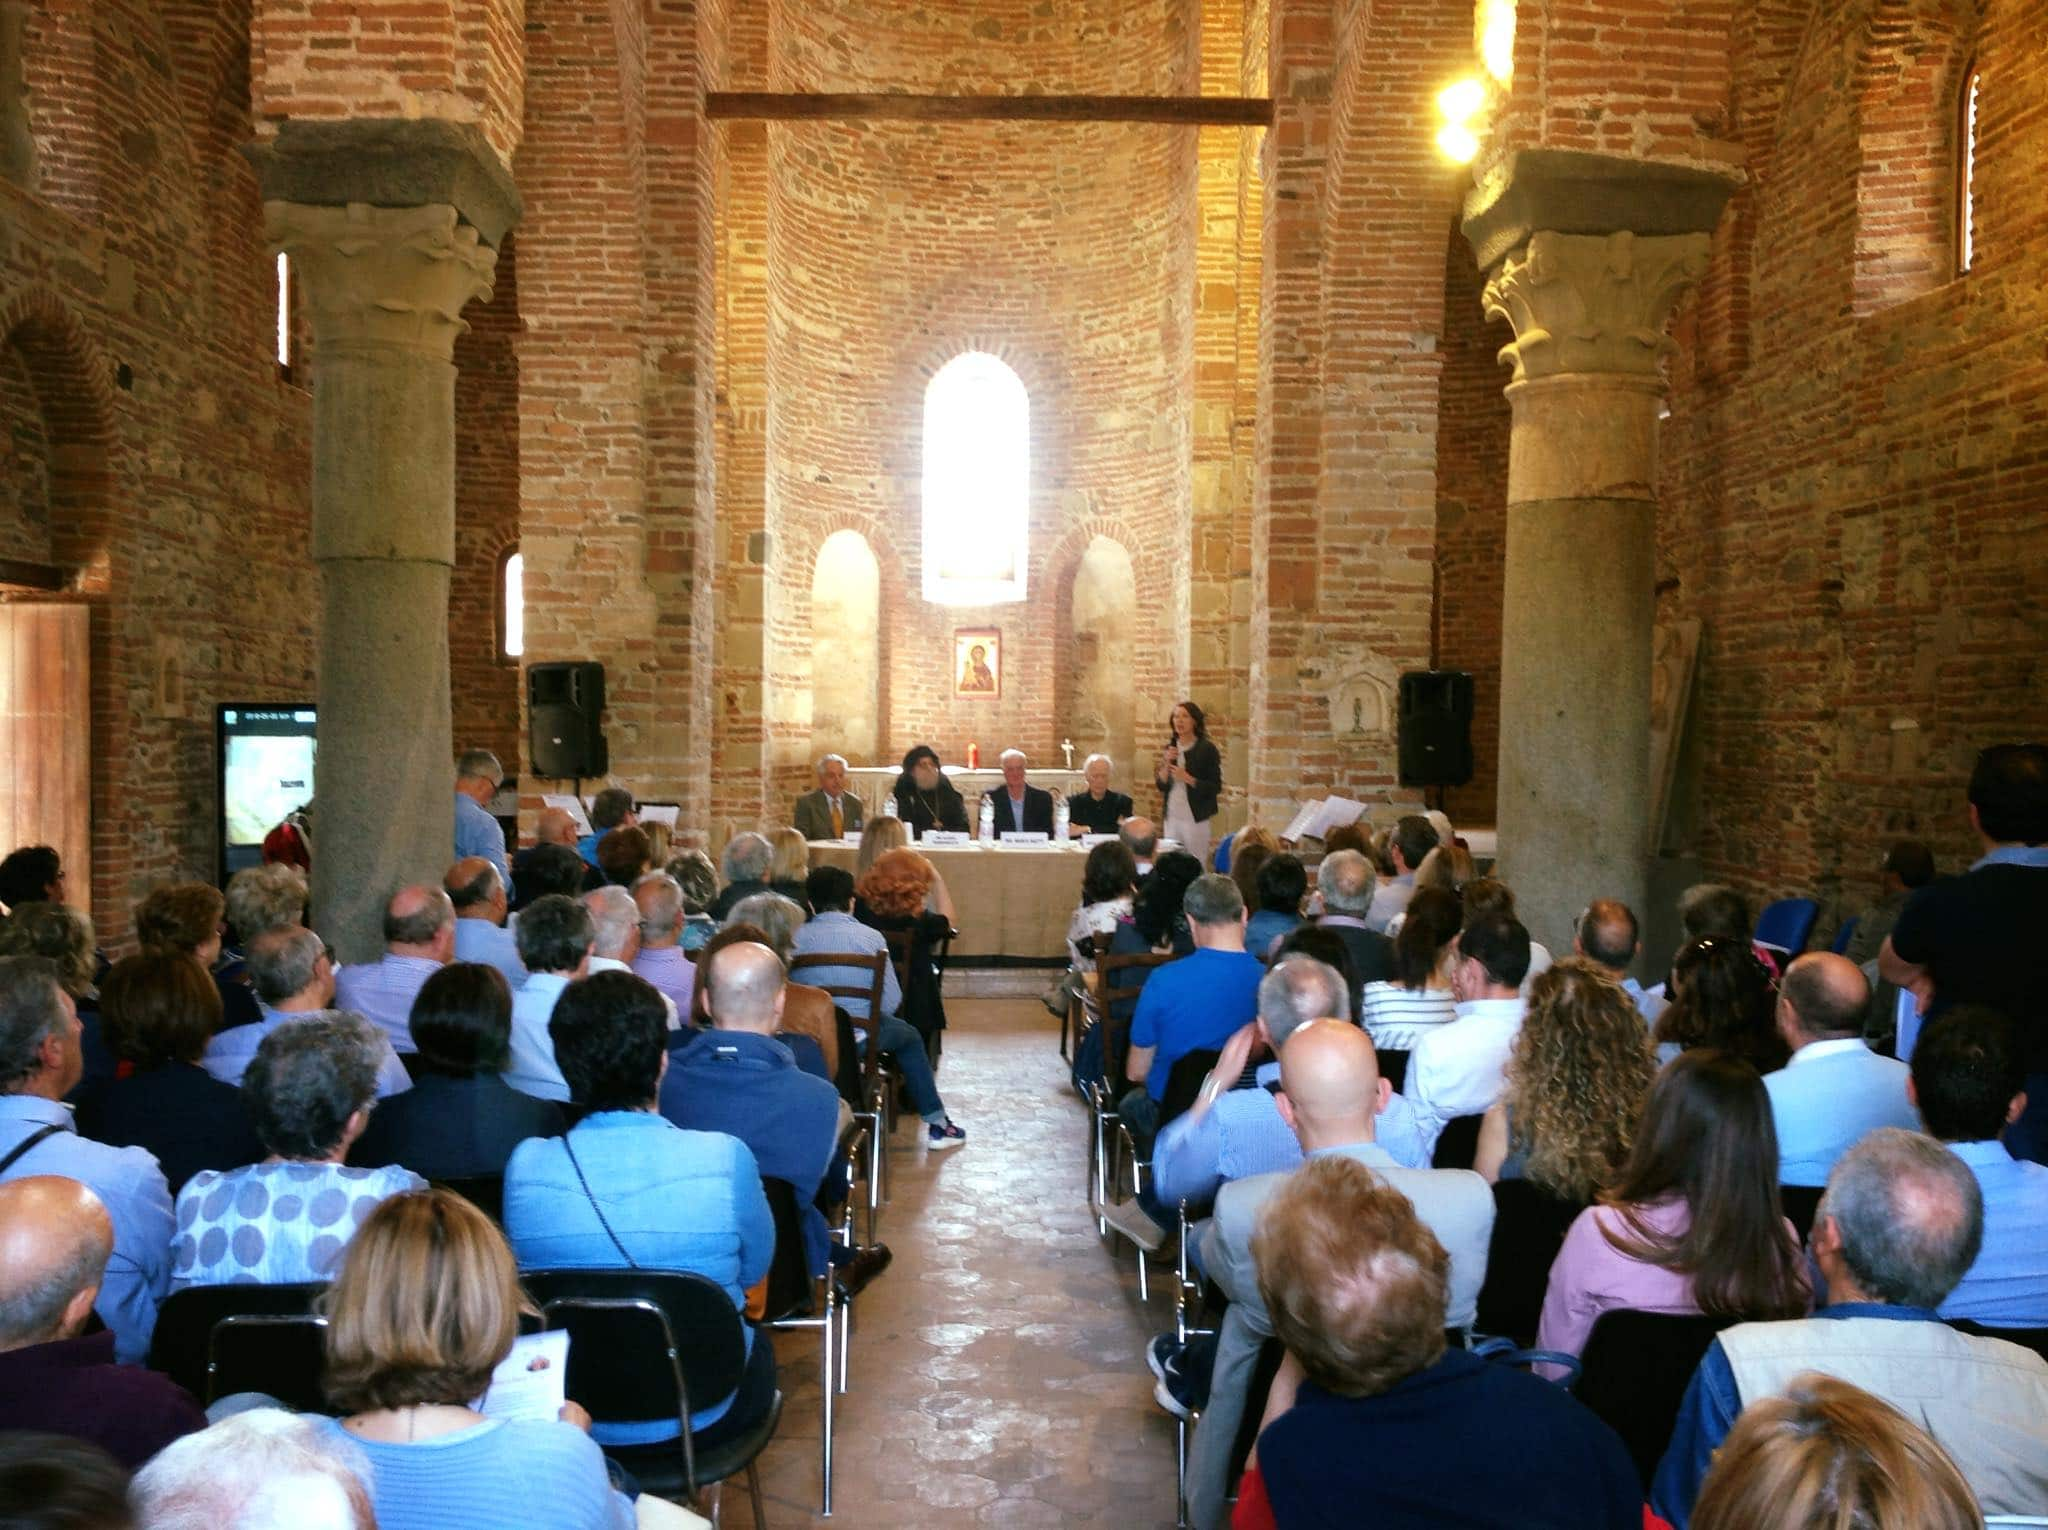 FIERE CONGRESSI MEETING MAGIC SOUND DI DOMINGO CRISAFULLI SICILIA CHIESA LOCATION